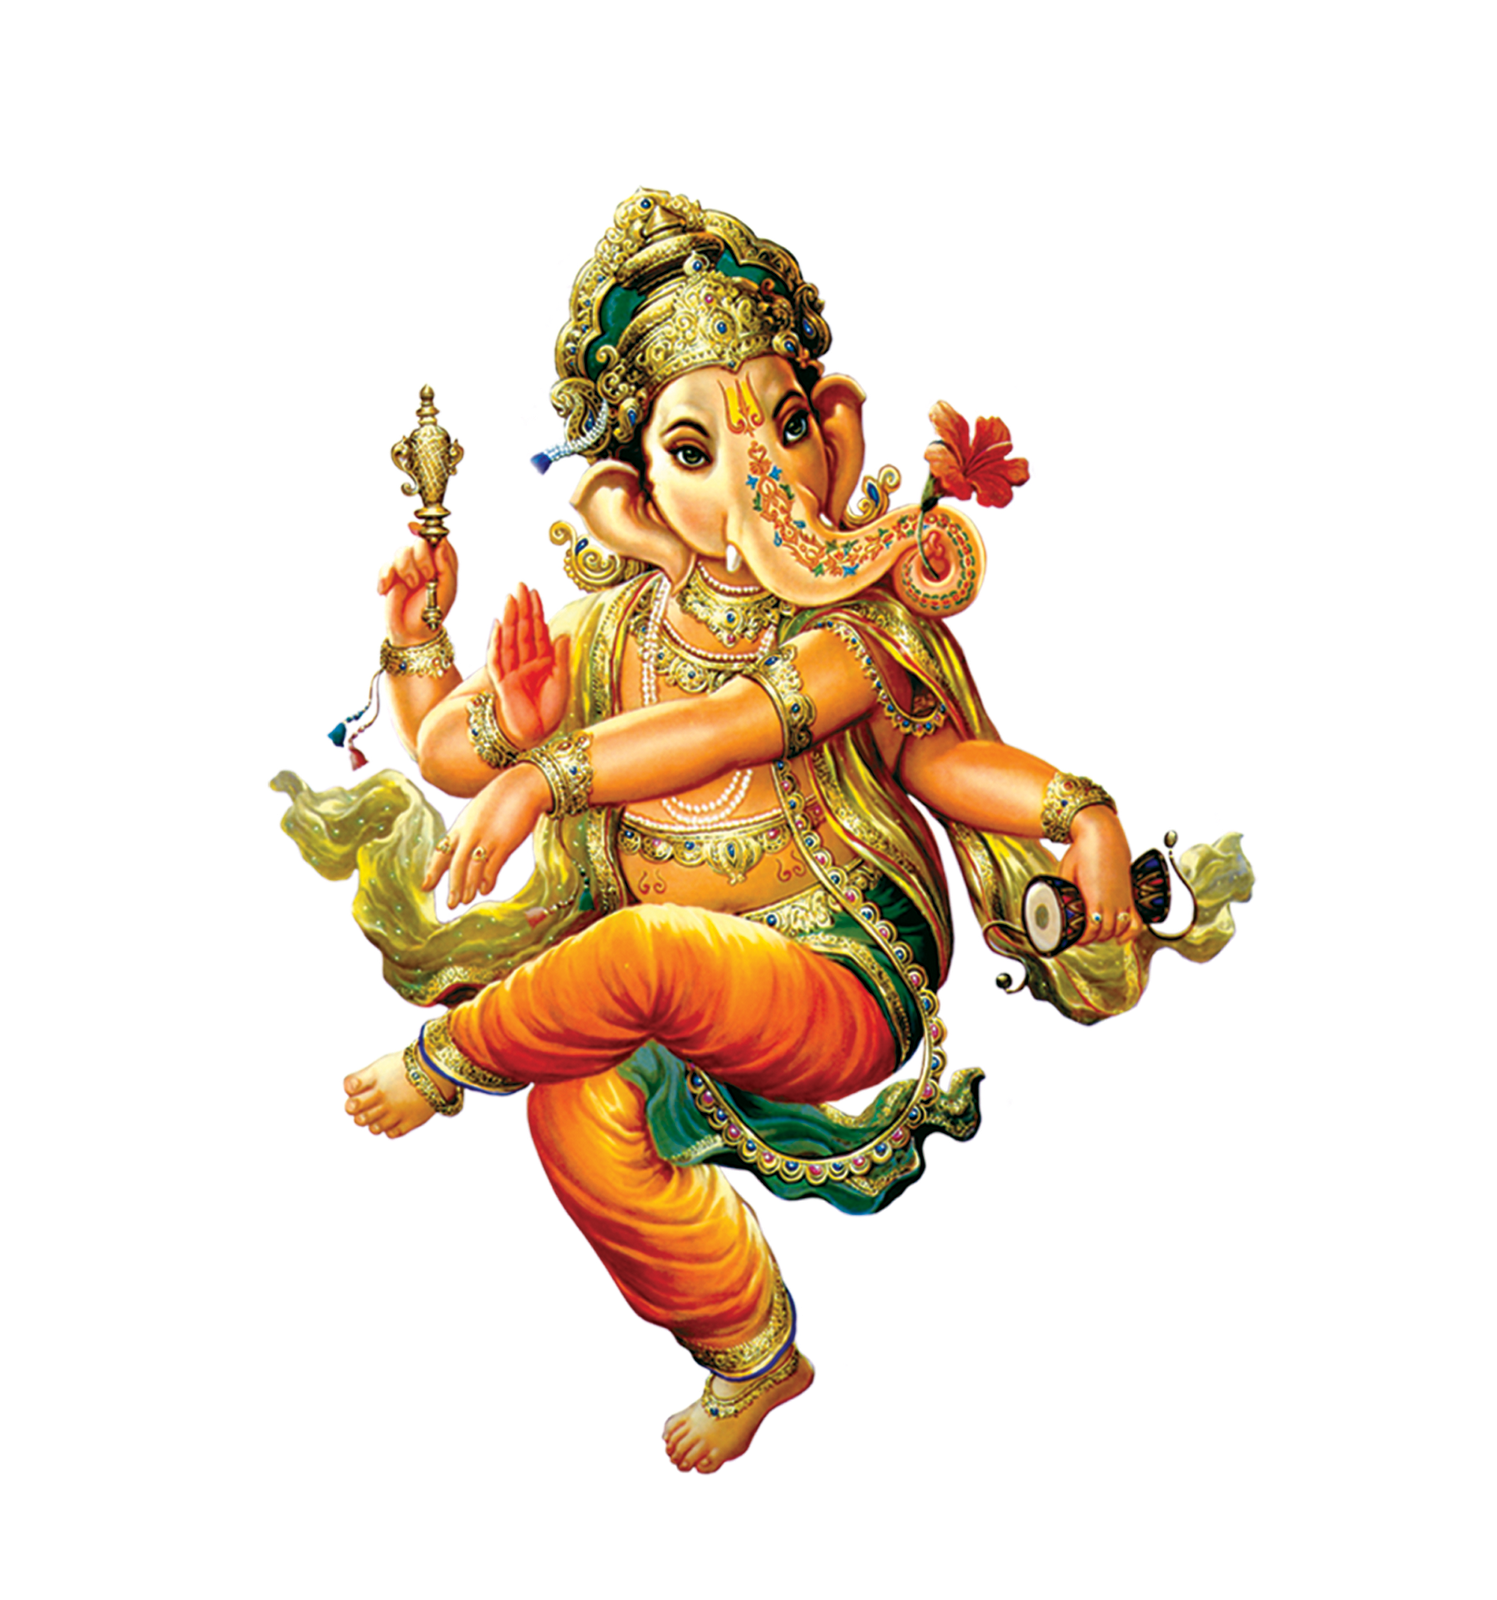 Png format images free download. Sri ganesh hd transparent